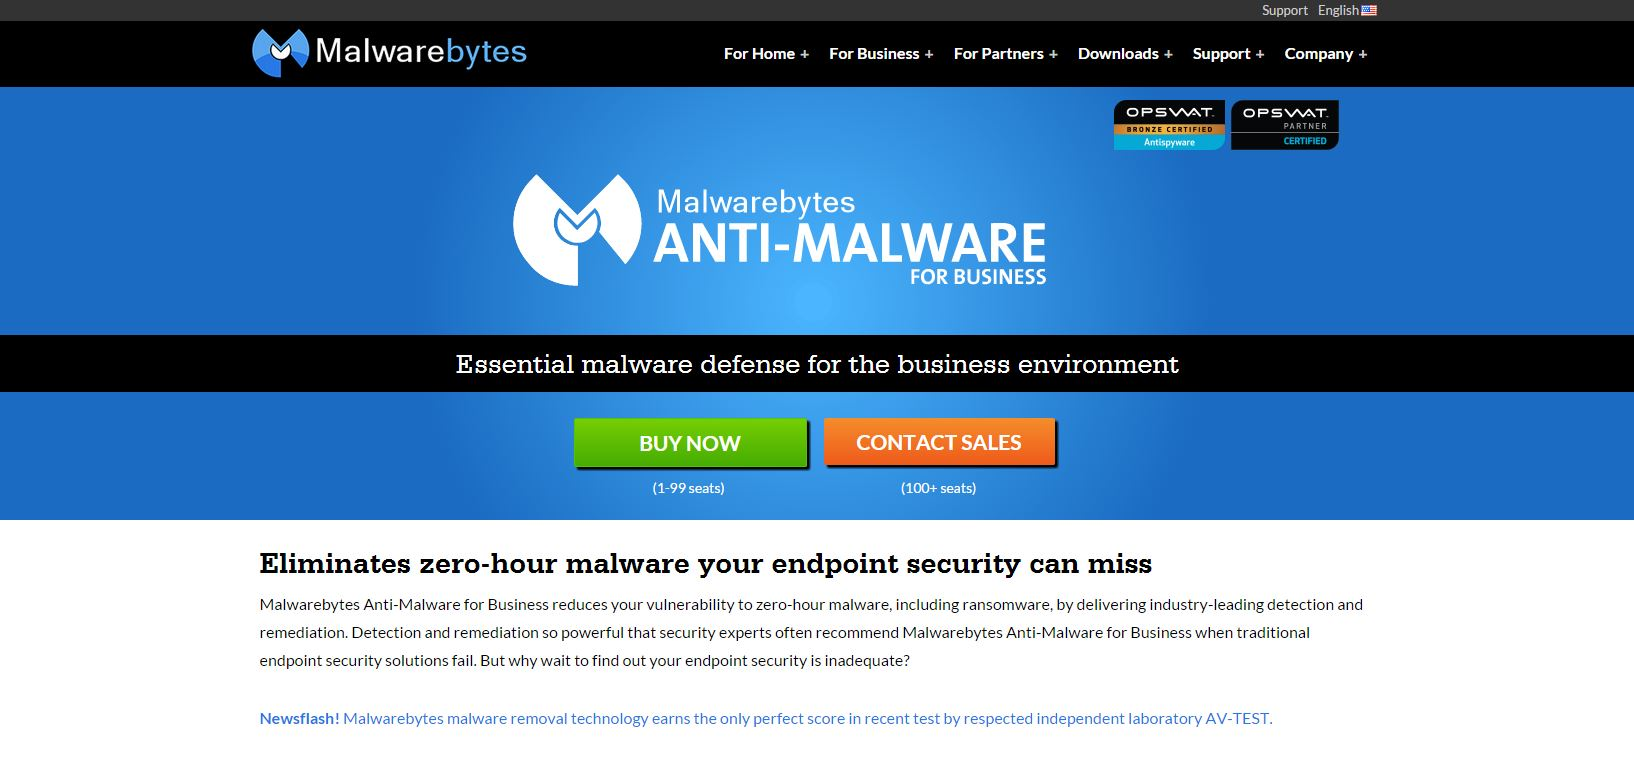 Malwarebytes Free for Home use offers Business Grade Protection as well.